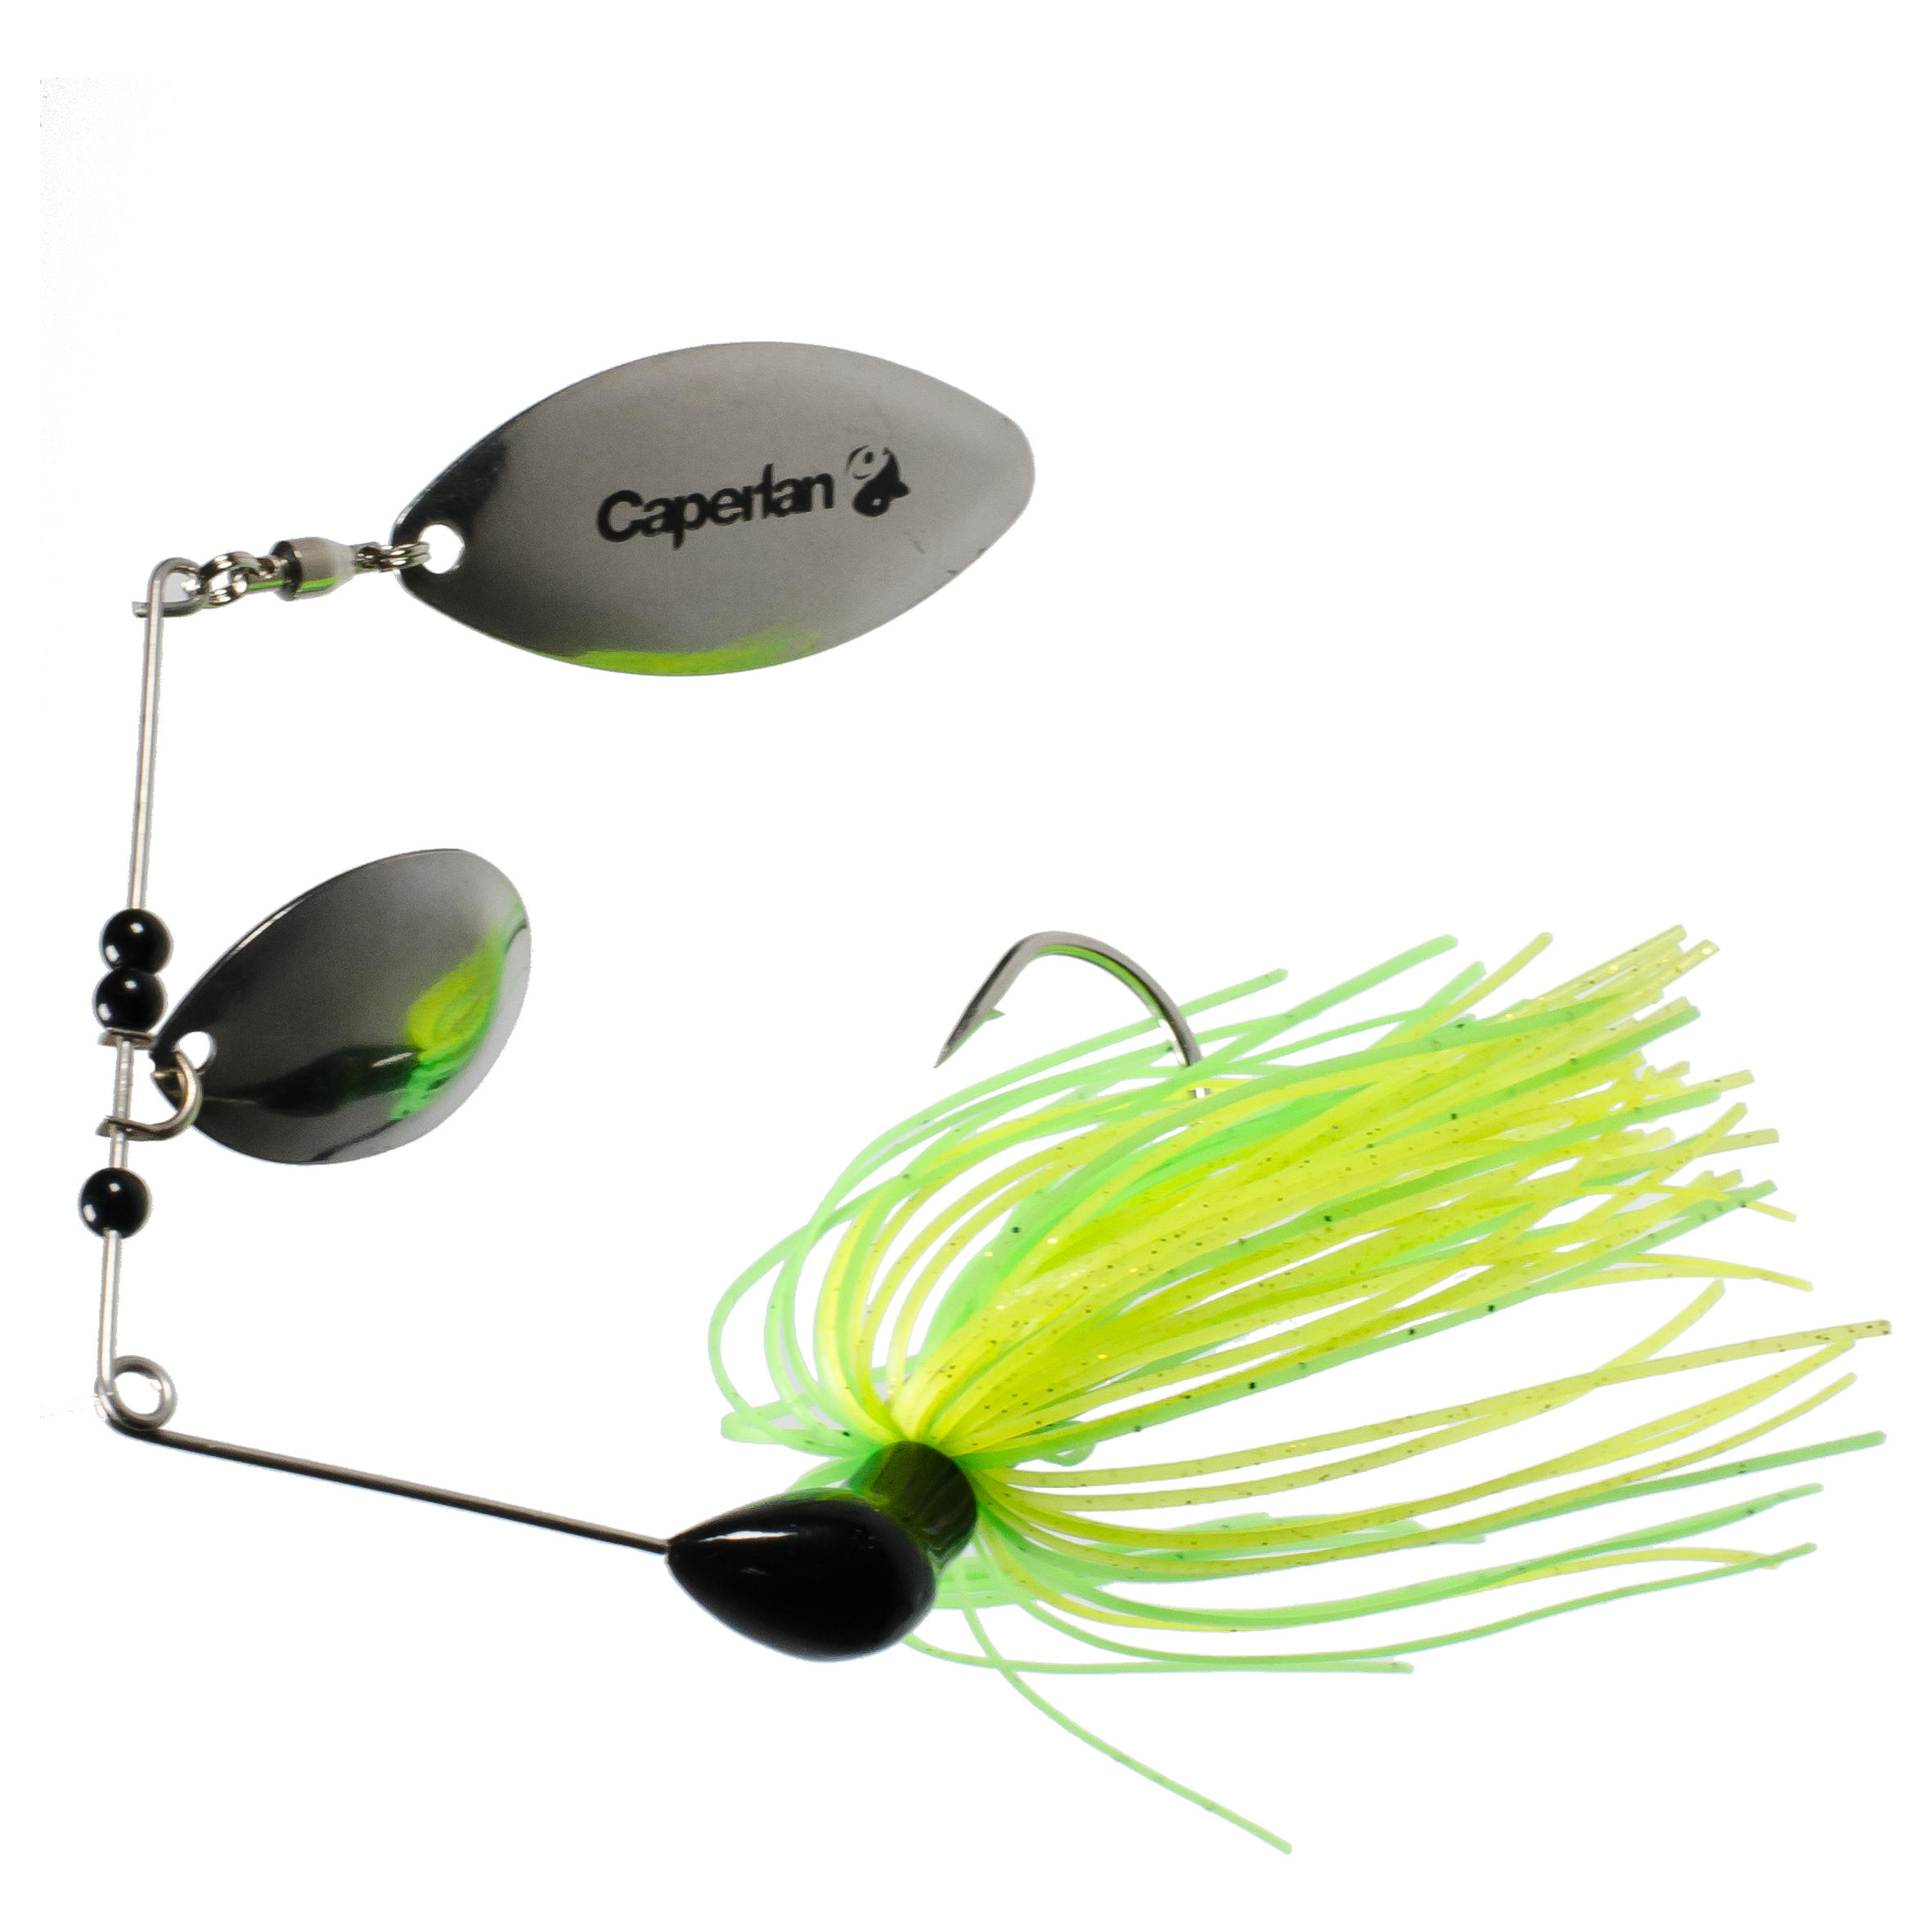 Buckhan 3/8oz Yellow/Green Lure Fishing Spinnerbait